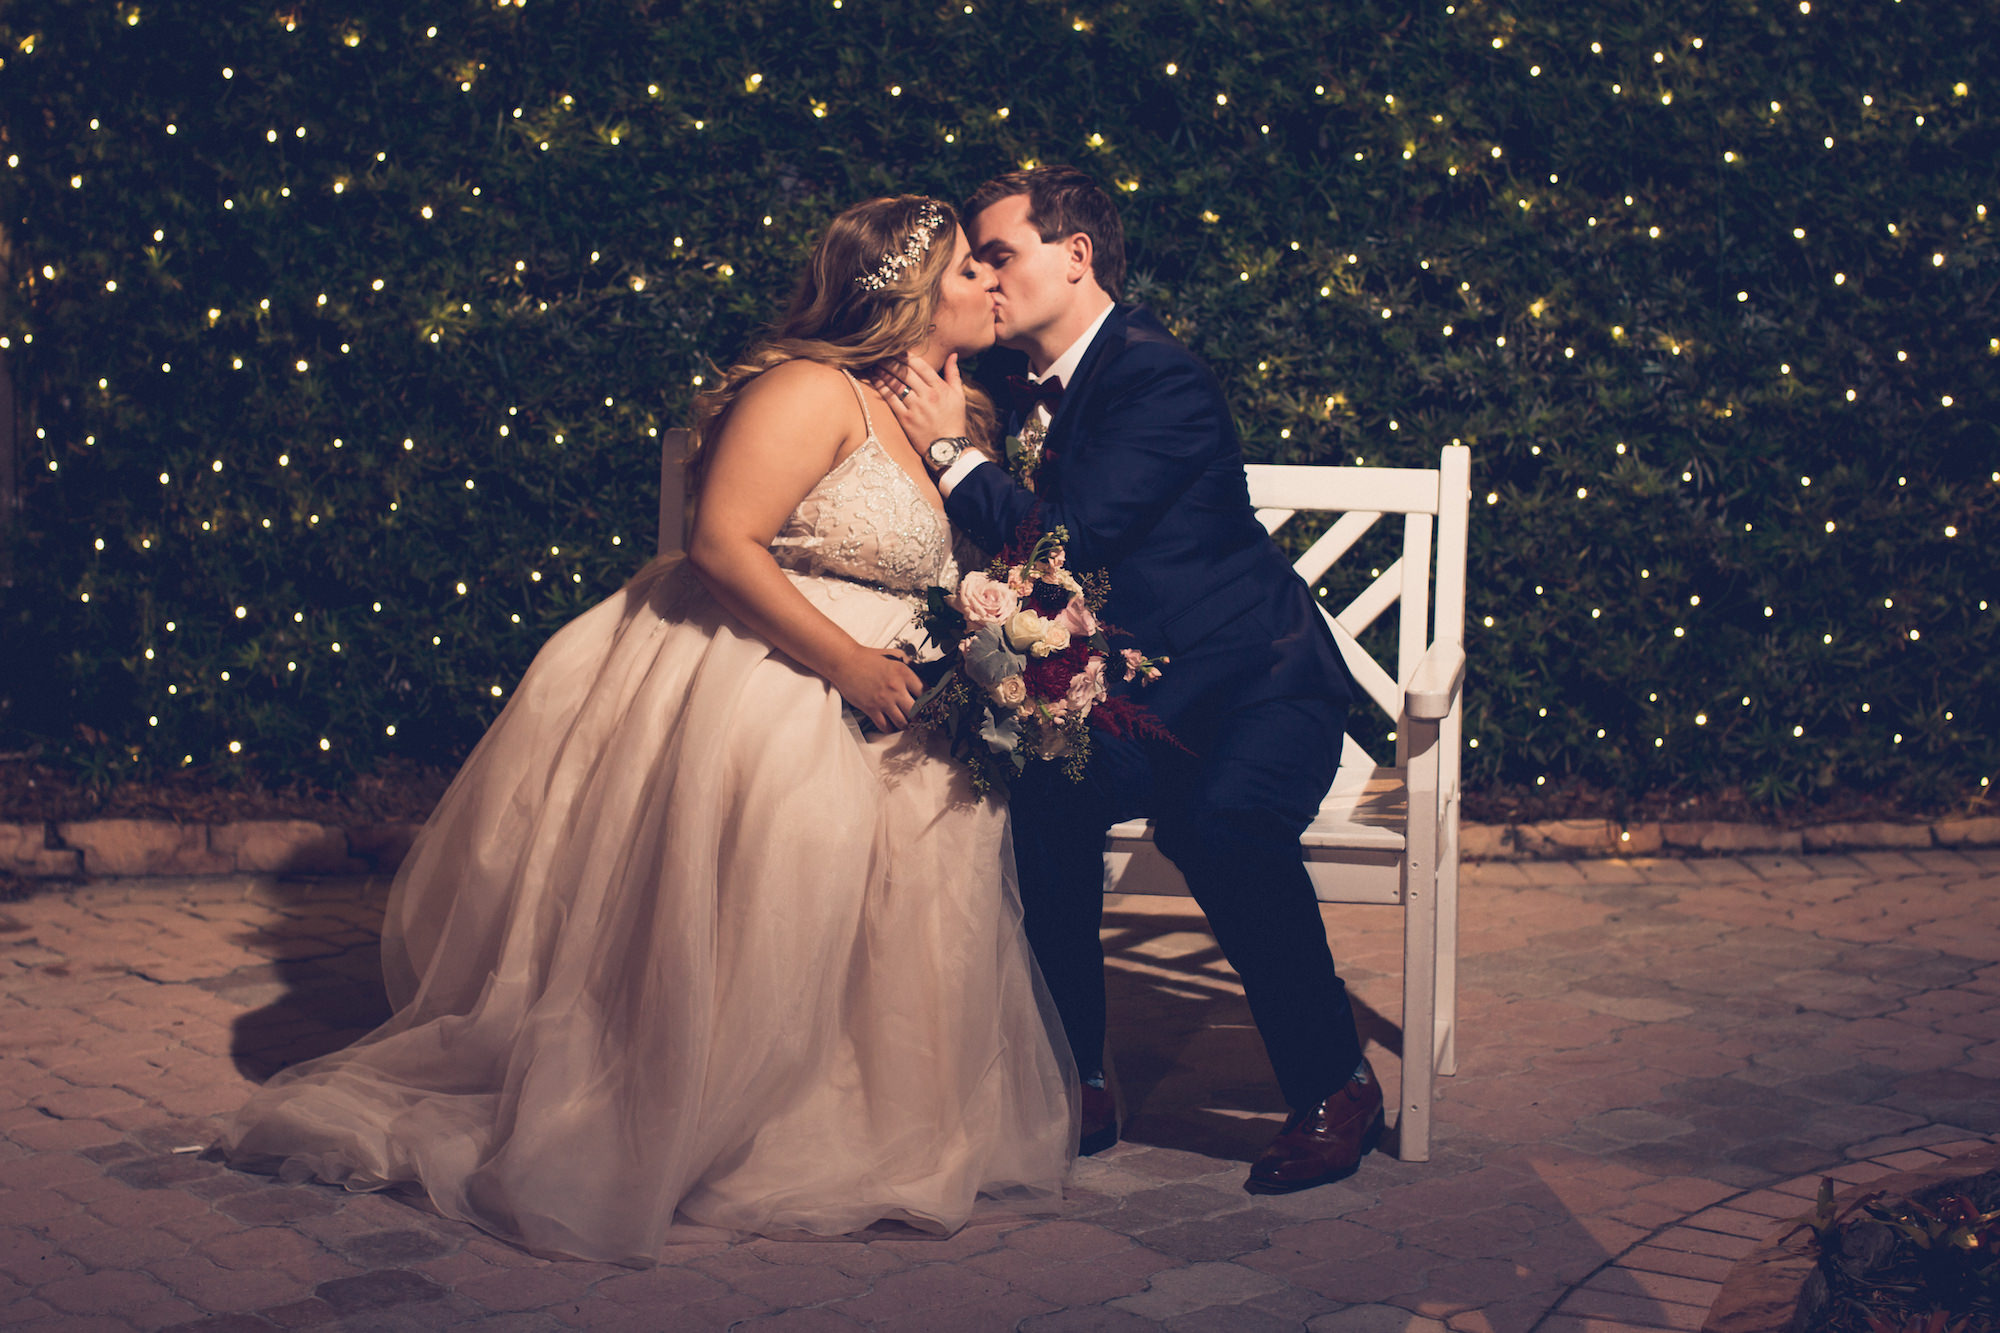 Romantic Bride and Groom Wedding Portrait with Twinkle Lights Greenery Backdrop | Wedding Photographer Luxe Light Images | Historic Pink Palace St. Pete Waterfront Wedding Venue The Don CeSar